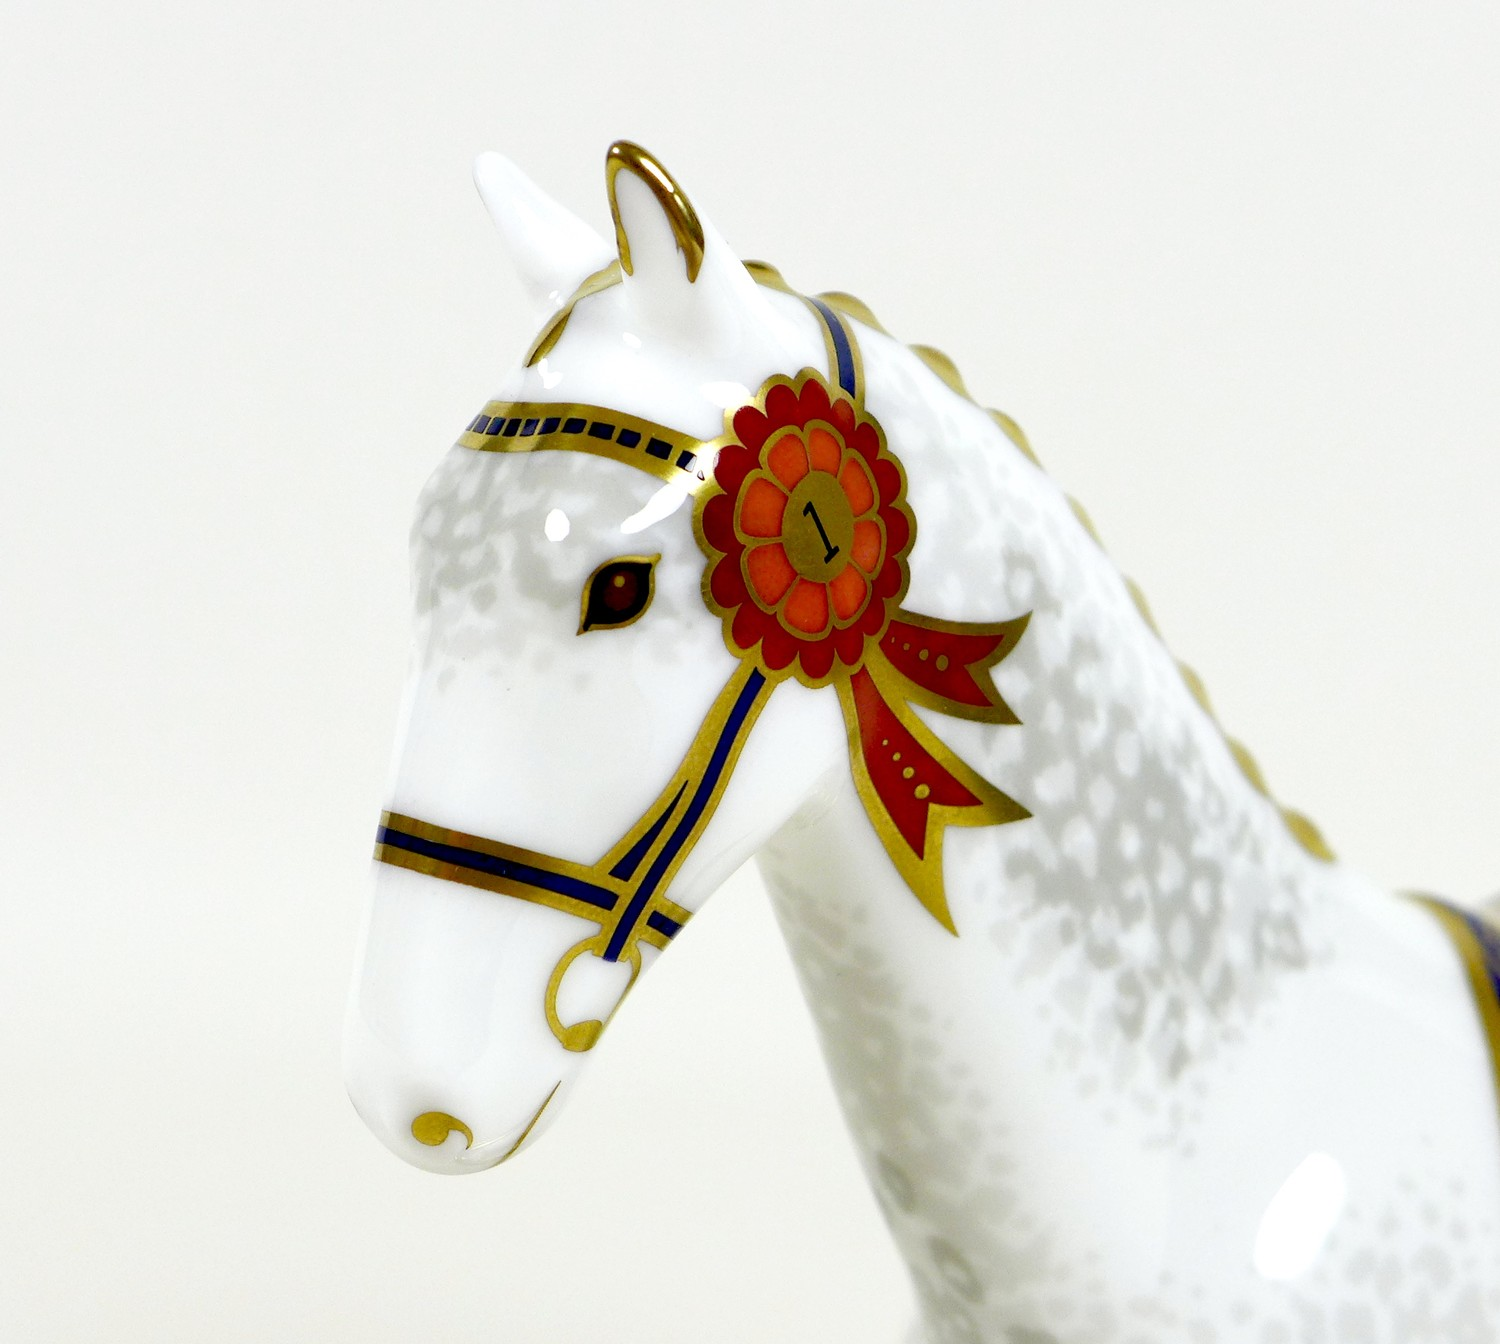 A Royal Crown Derby paperweight, modelled as 'The Show Pony', Designers' Choice Collection, - Image 7 of 9